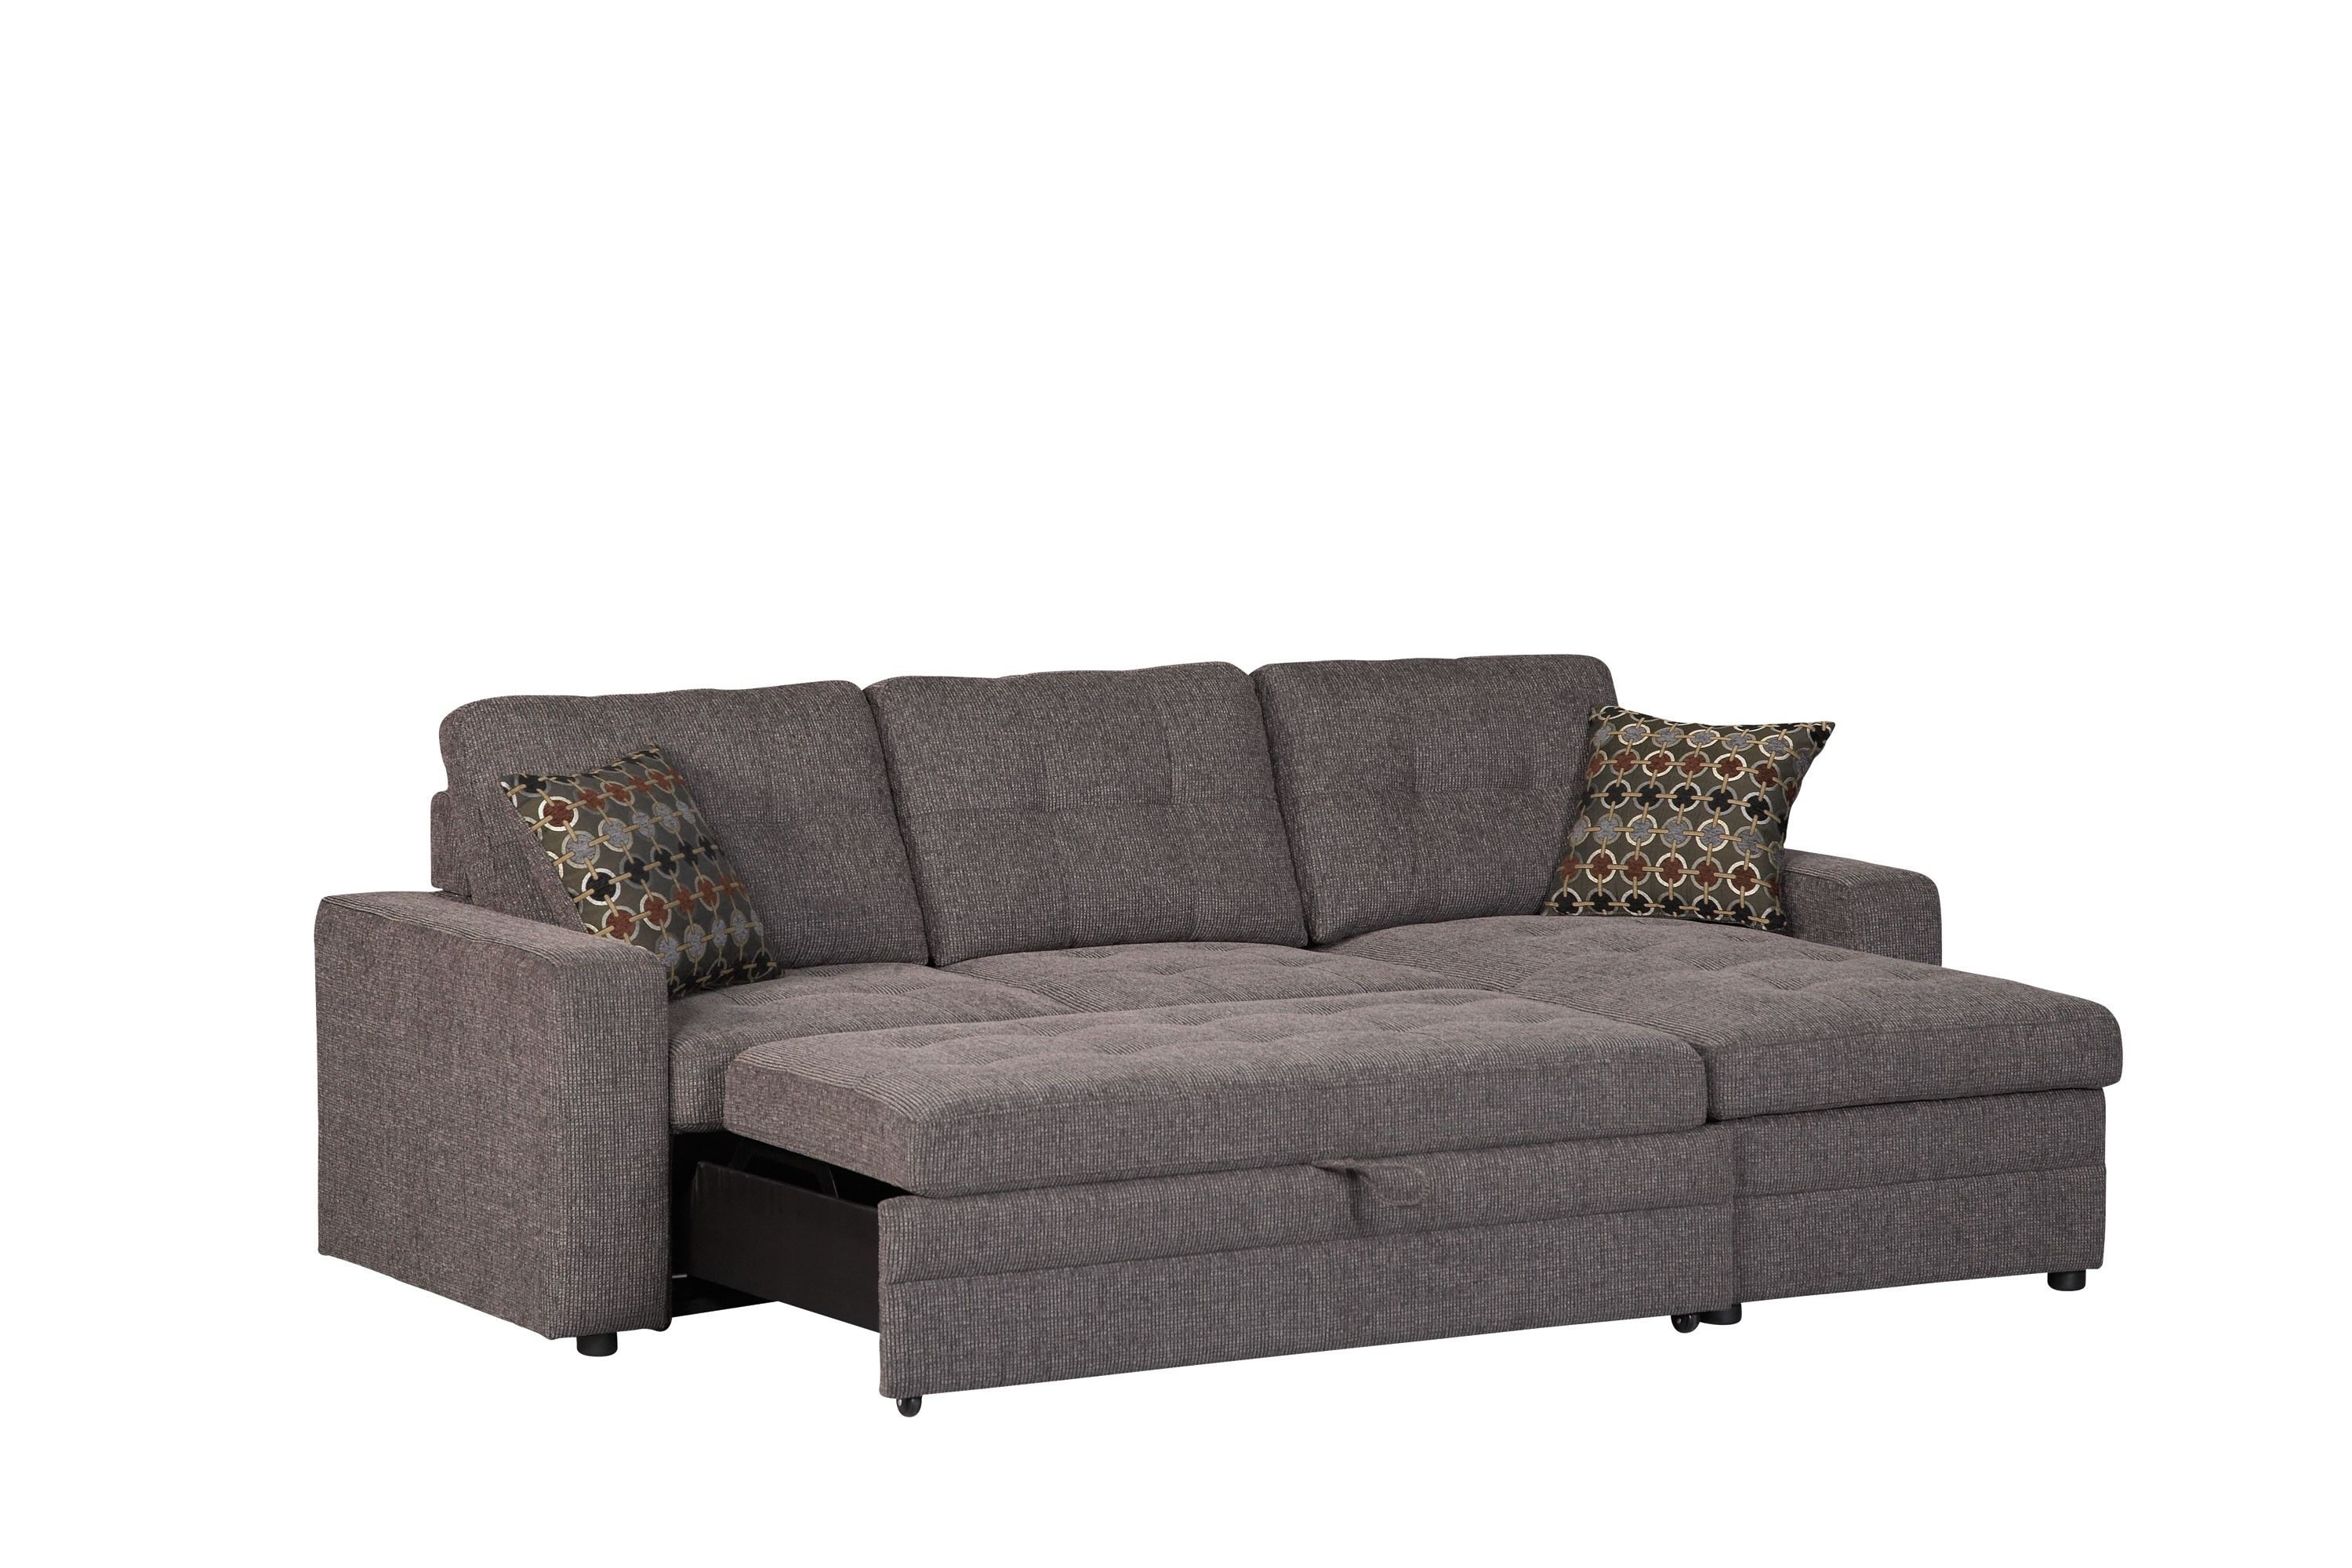 Coaster 501677B1, 501677B2 | Sectional Sofas in 2019 ...